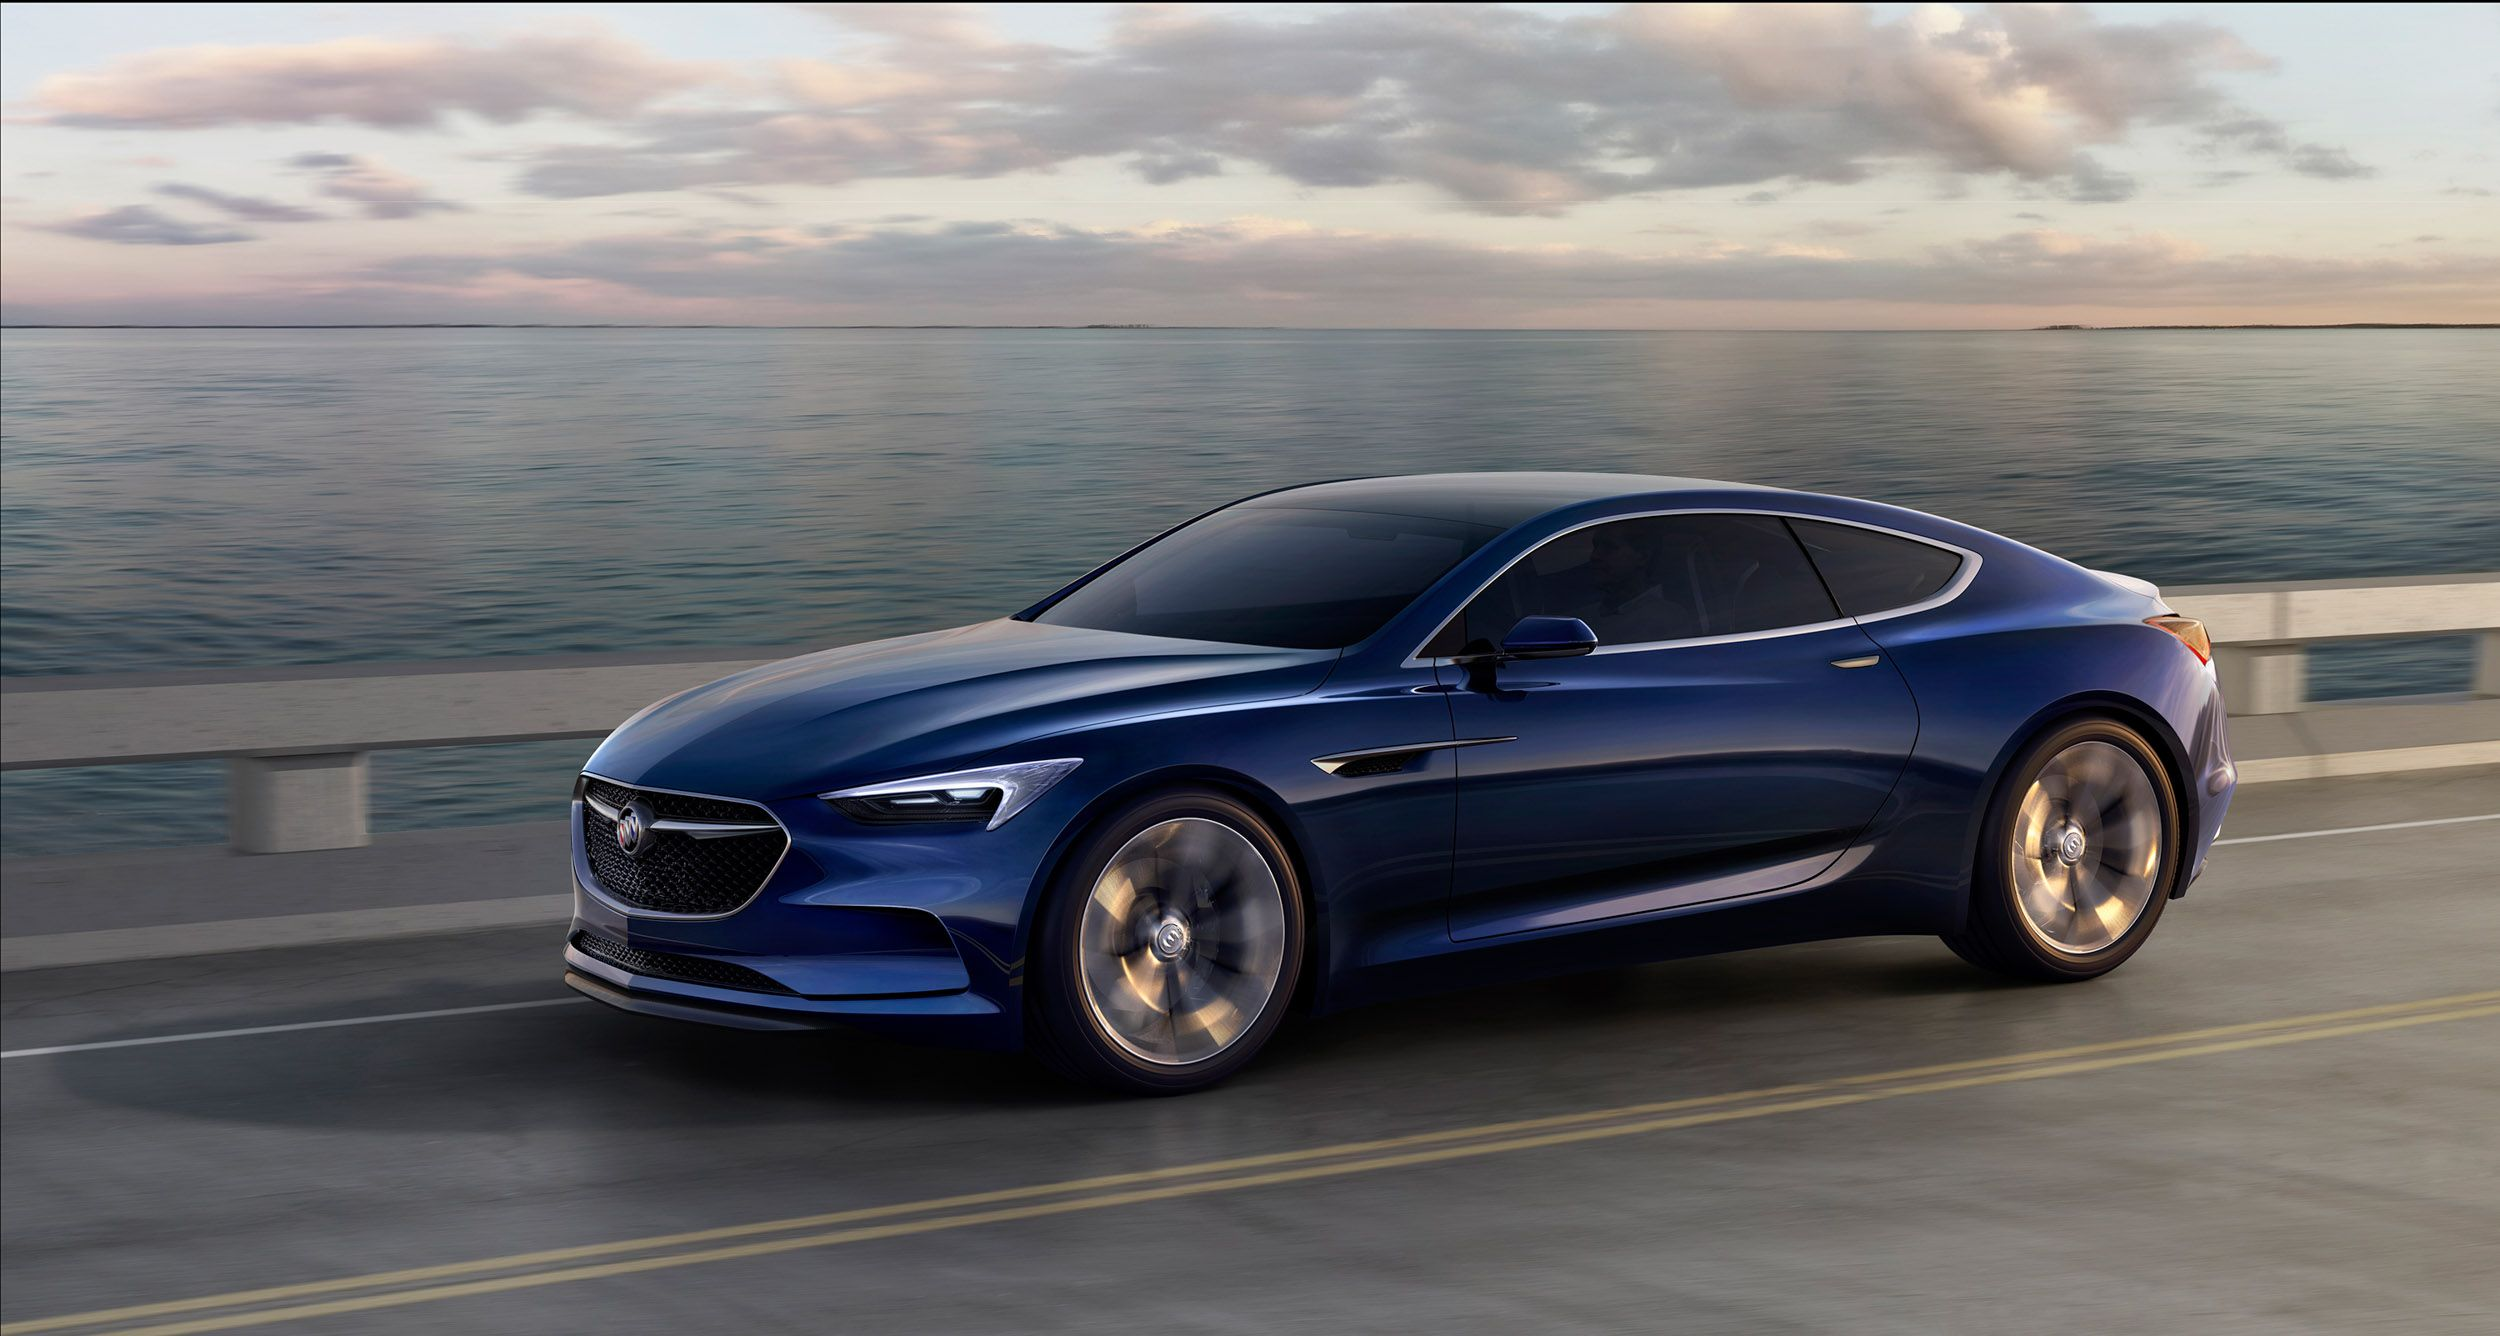 Buick teases future design and style with Avista Concept • CF Blog